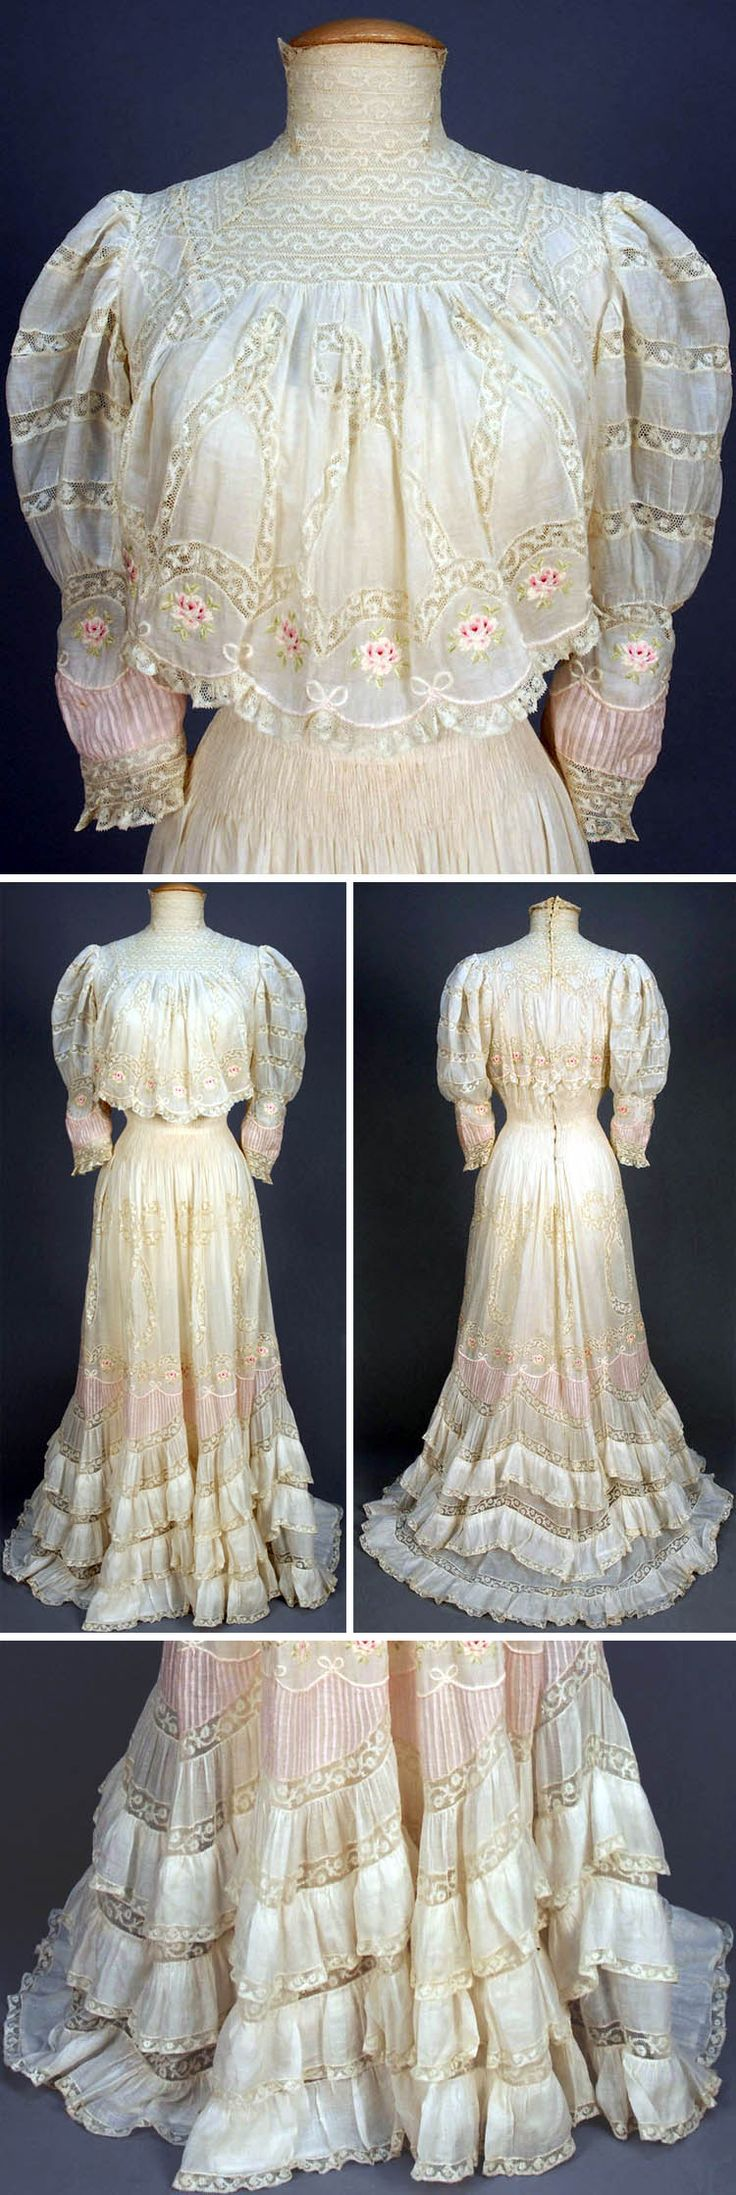 78 best Vêtements 1891/1900 images on Pinterest | 1890s fashion ...